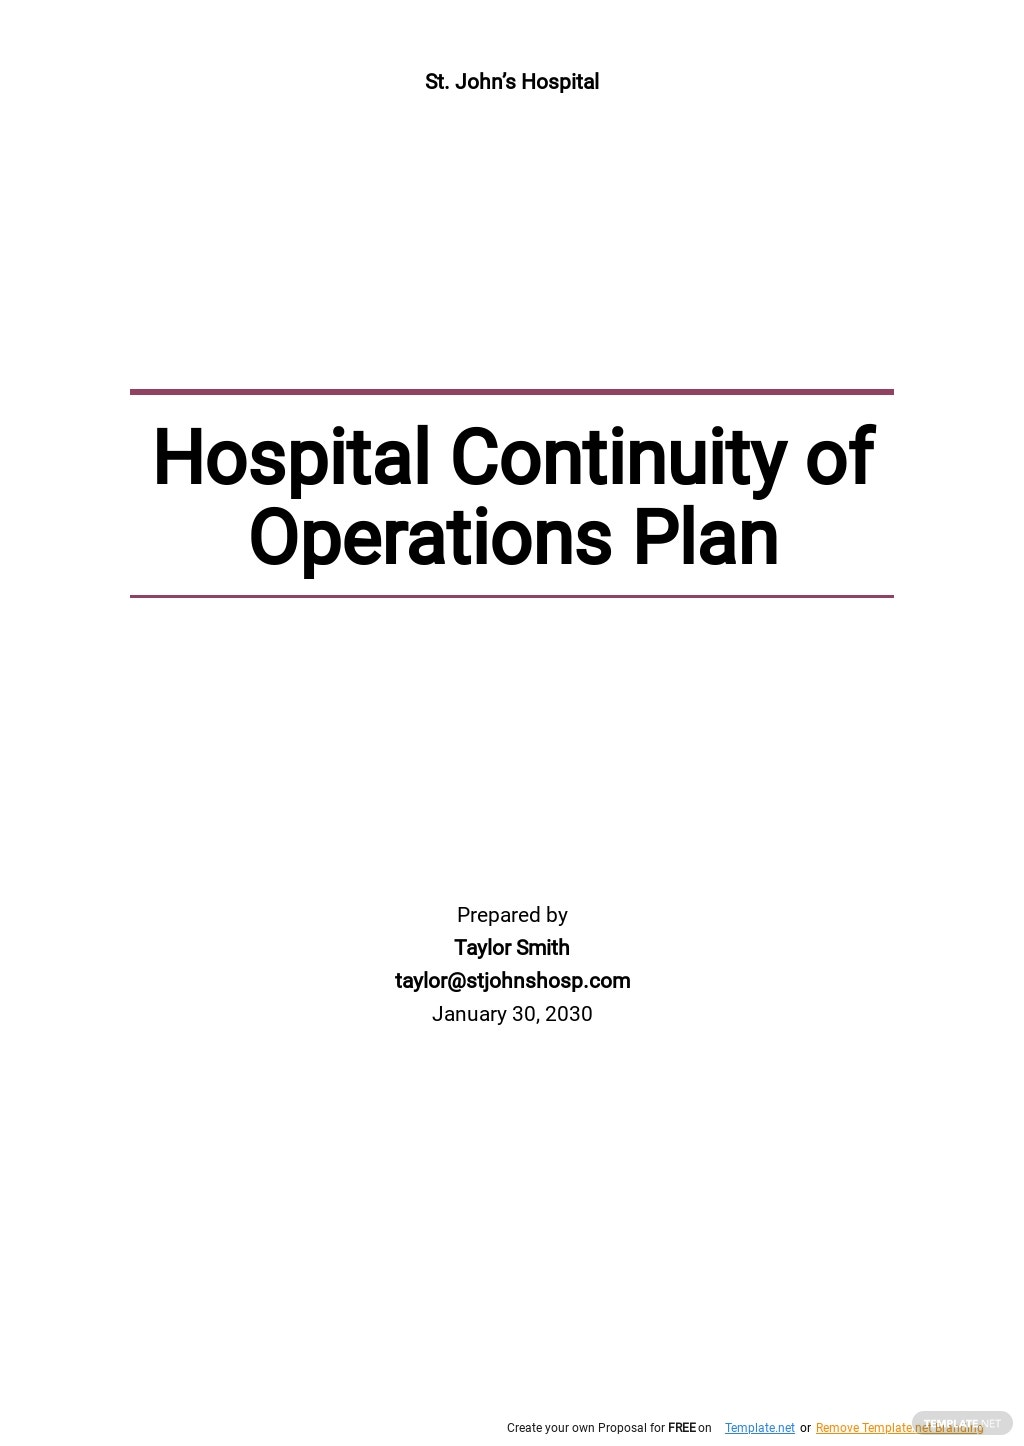 Hospital Continuity of Operations Plan Template.jpe